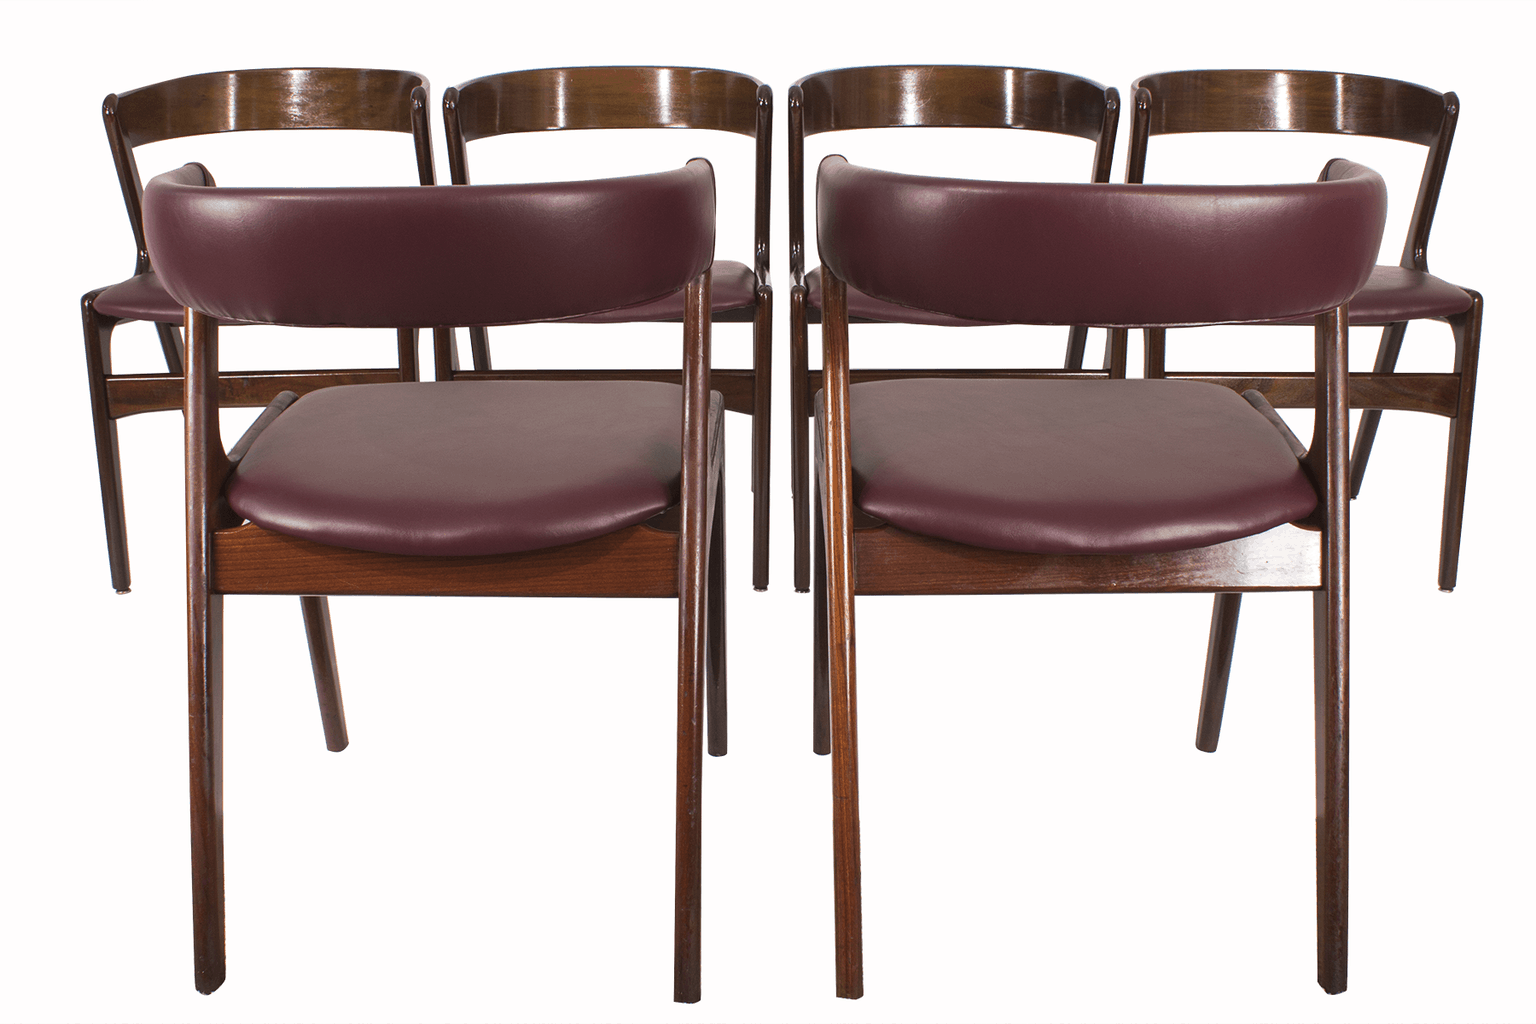 Room Chairs Kai Kristiansen Dining Room Chairs 6 Midmod Decor